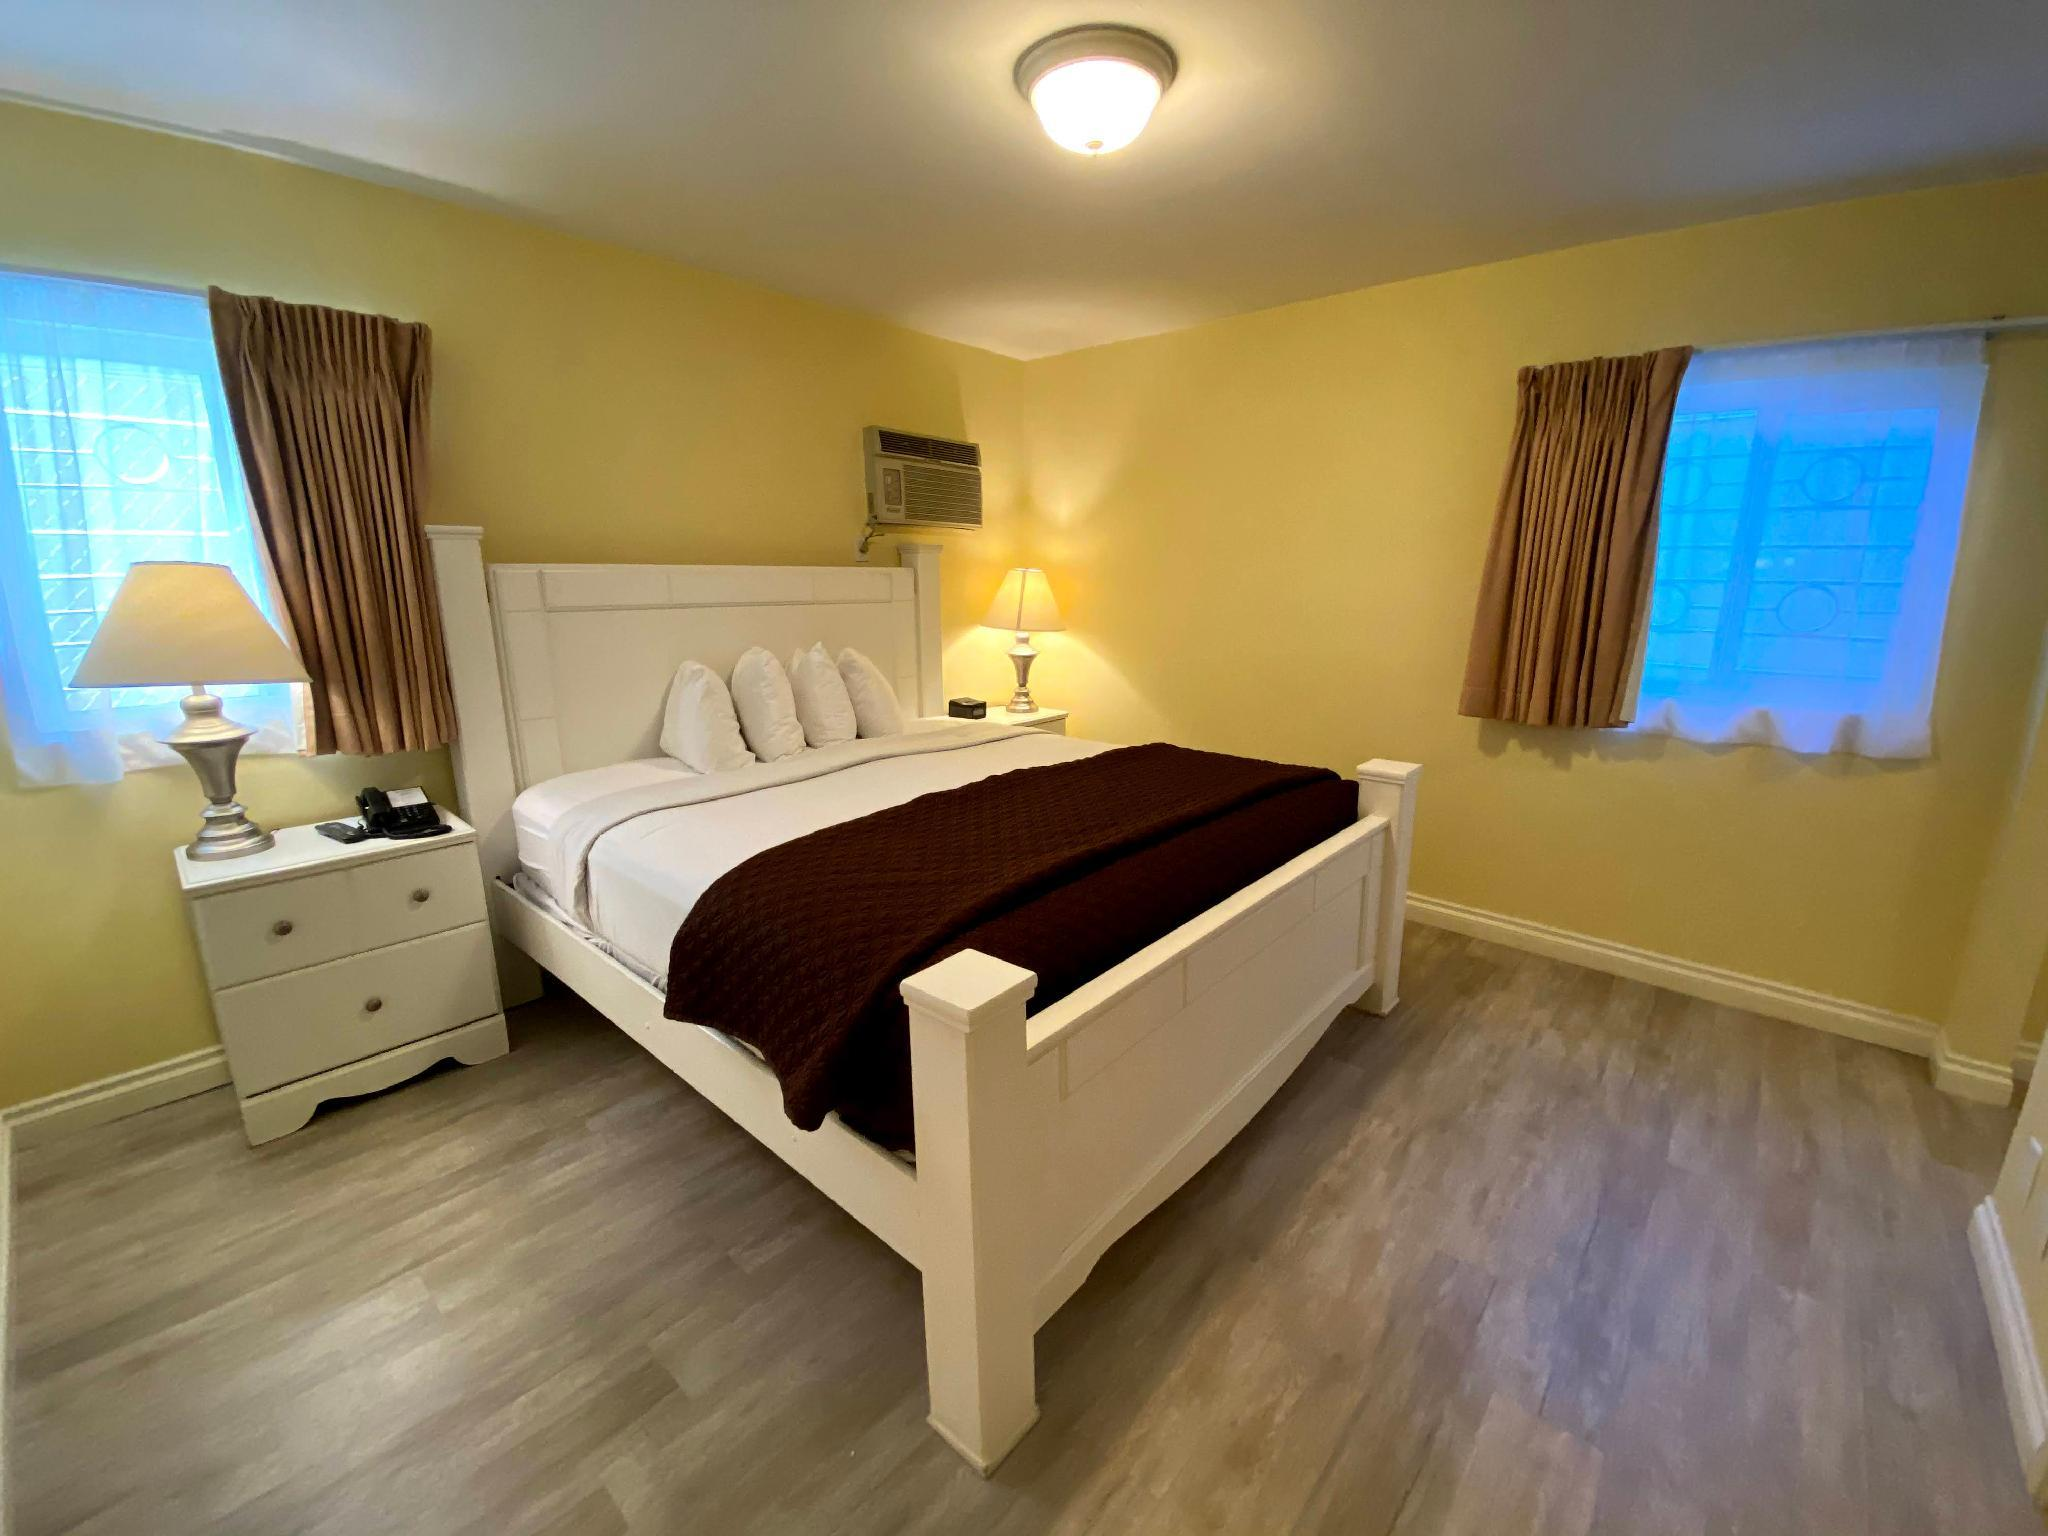 Deluxe King Room with 2 King Beds